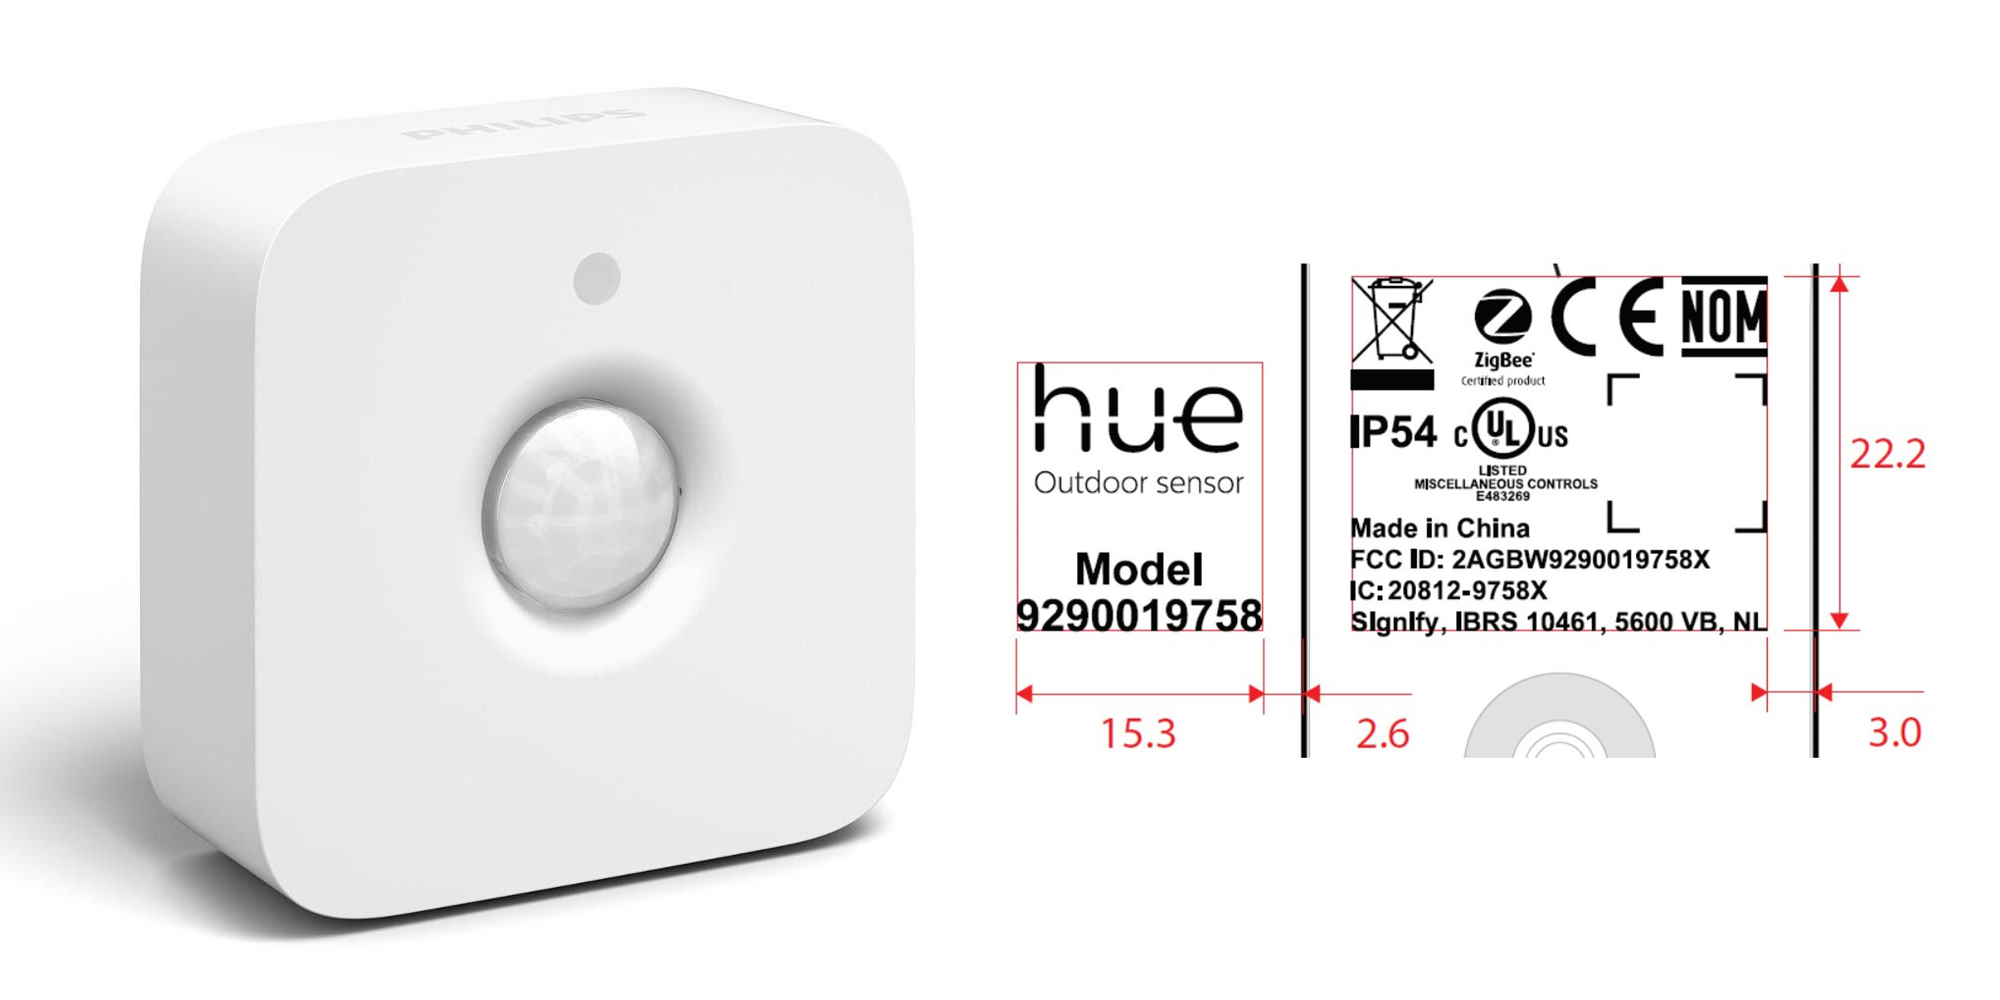 Here's our first glimpse at Philips' upcoming water-resistant Hue Outdoor Sensor